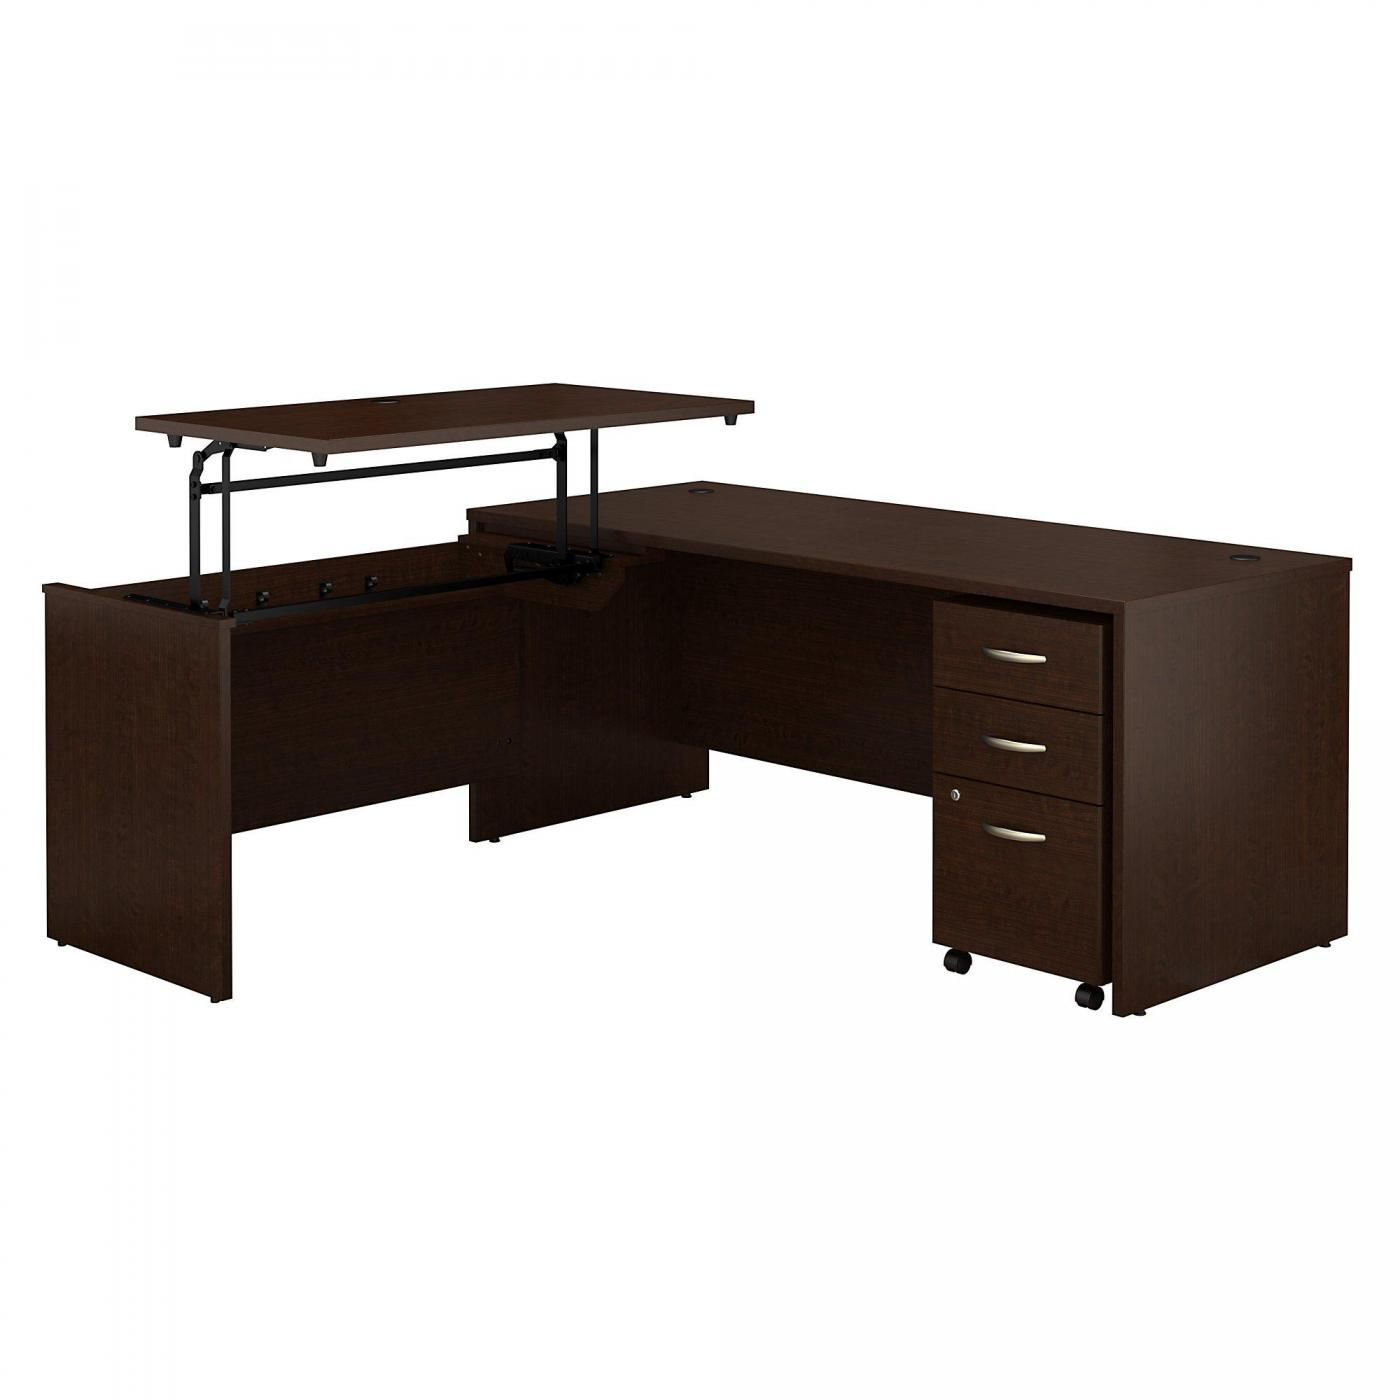 <font color=#c60><b>BUSH BUSINESS FURNITURE SERIES C 72W X 30D 3 POSITION SIT TO STAND L SHAPED DESK WITH MOBILE FILE CABINET. FREE SHIPPING. VIDEO:</font></b>